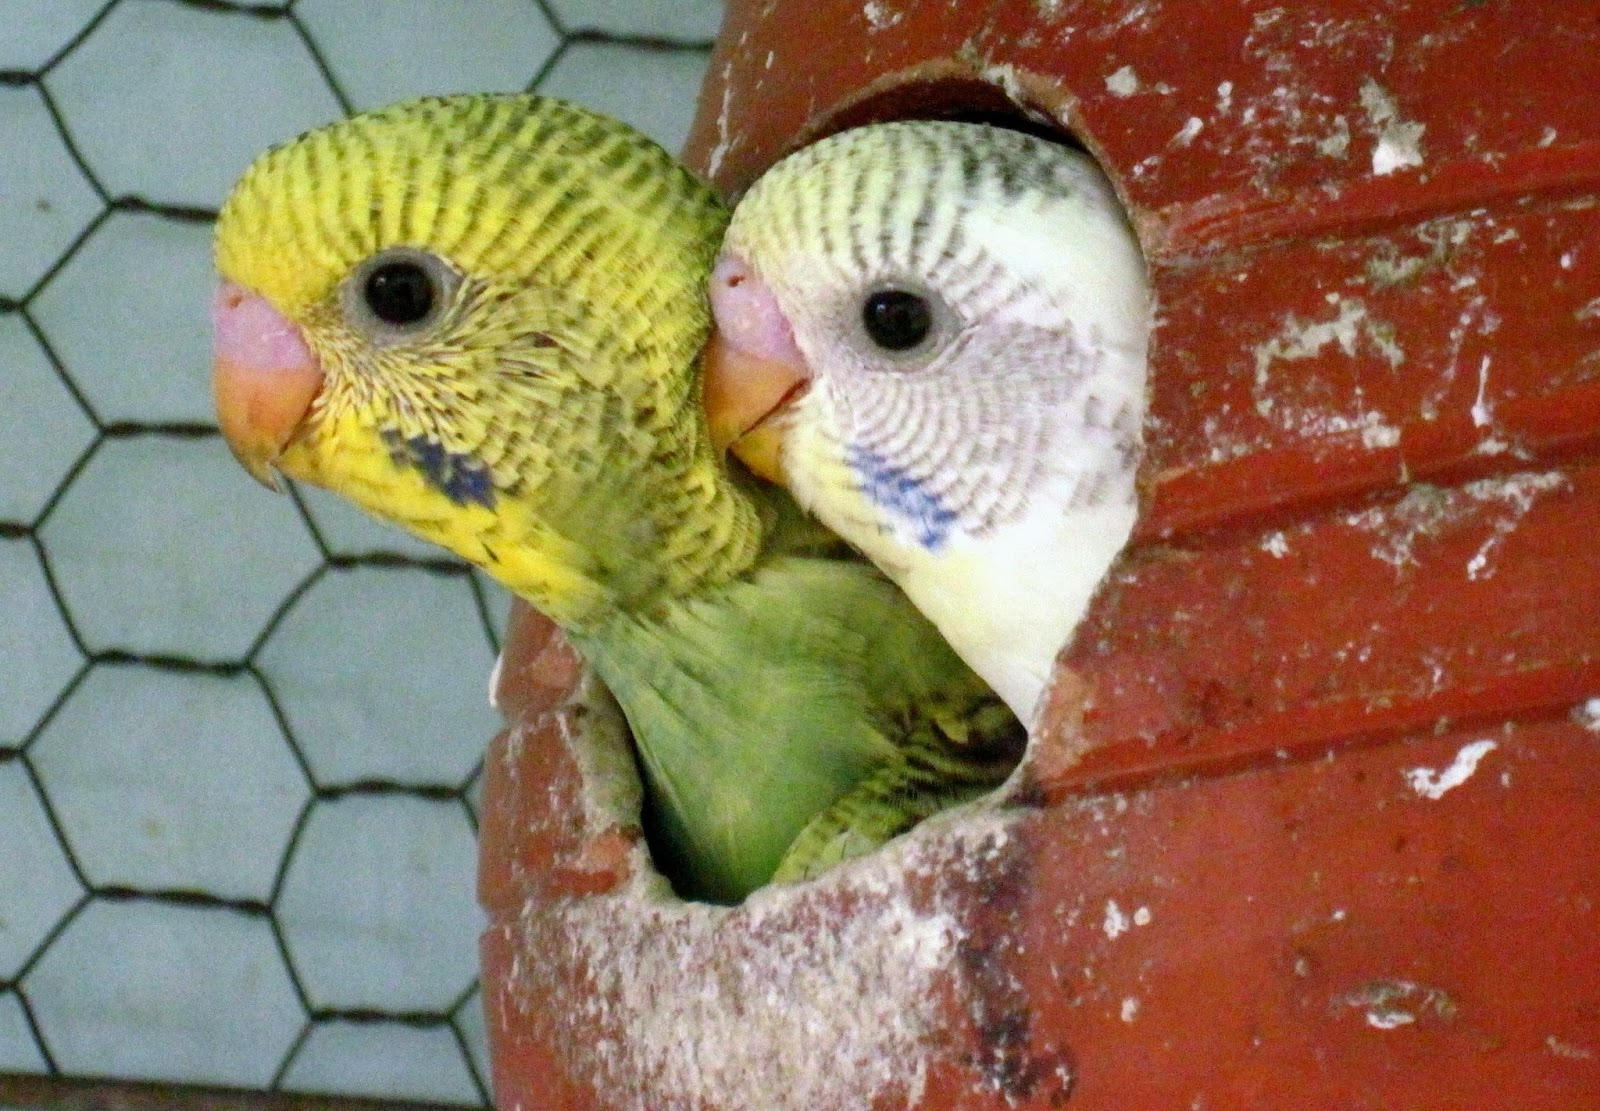 A layman's journal: HOW THE BUDGIES OR THE BADRIS ARE